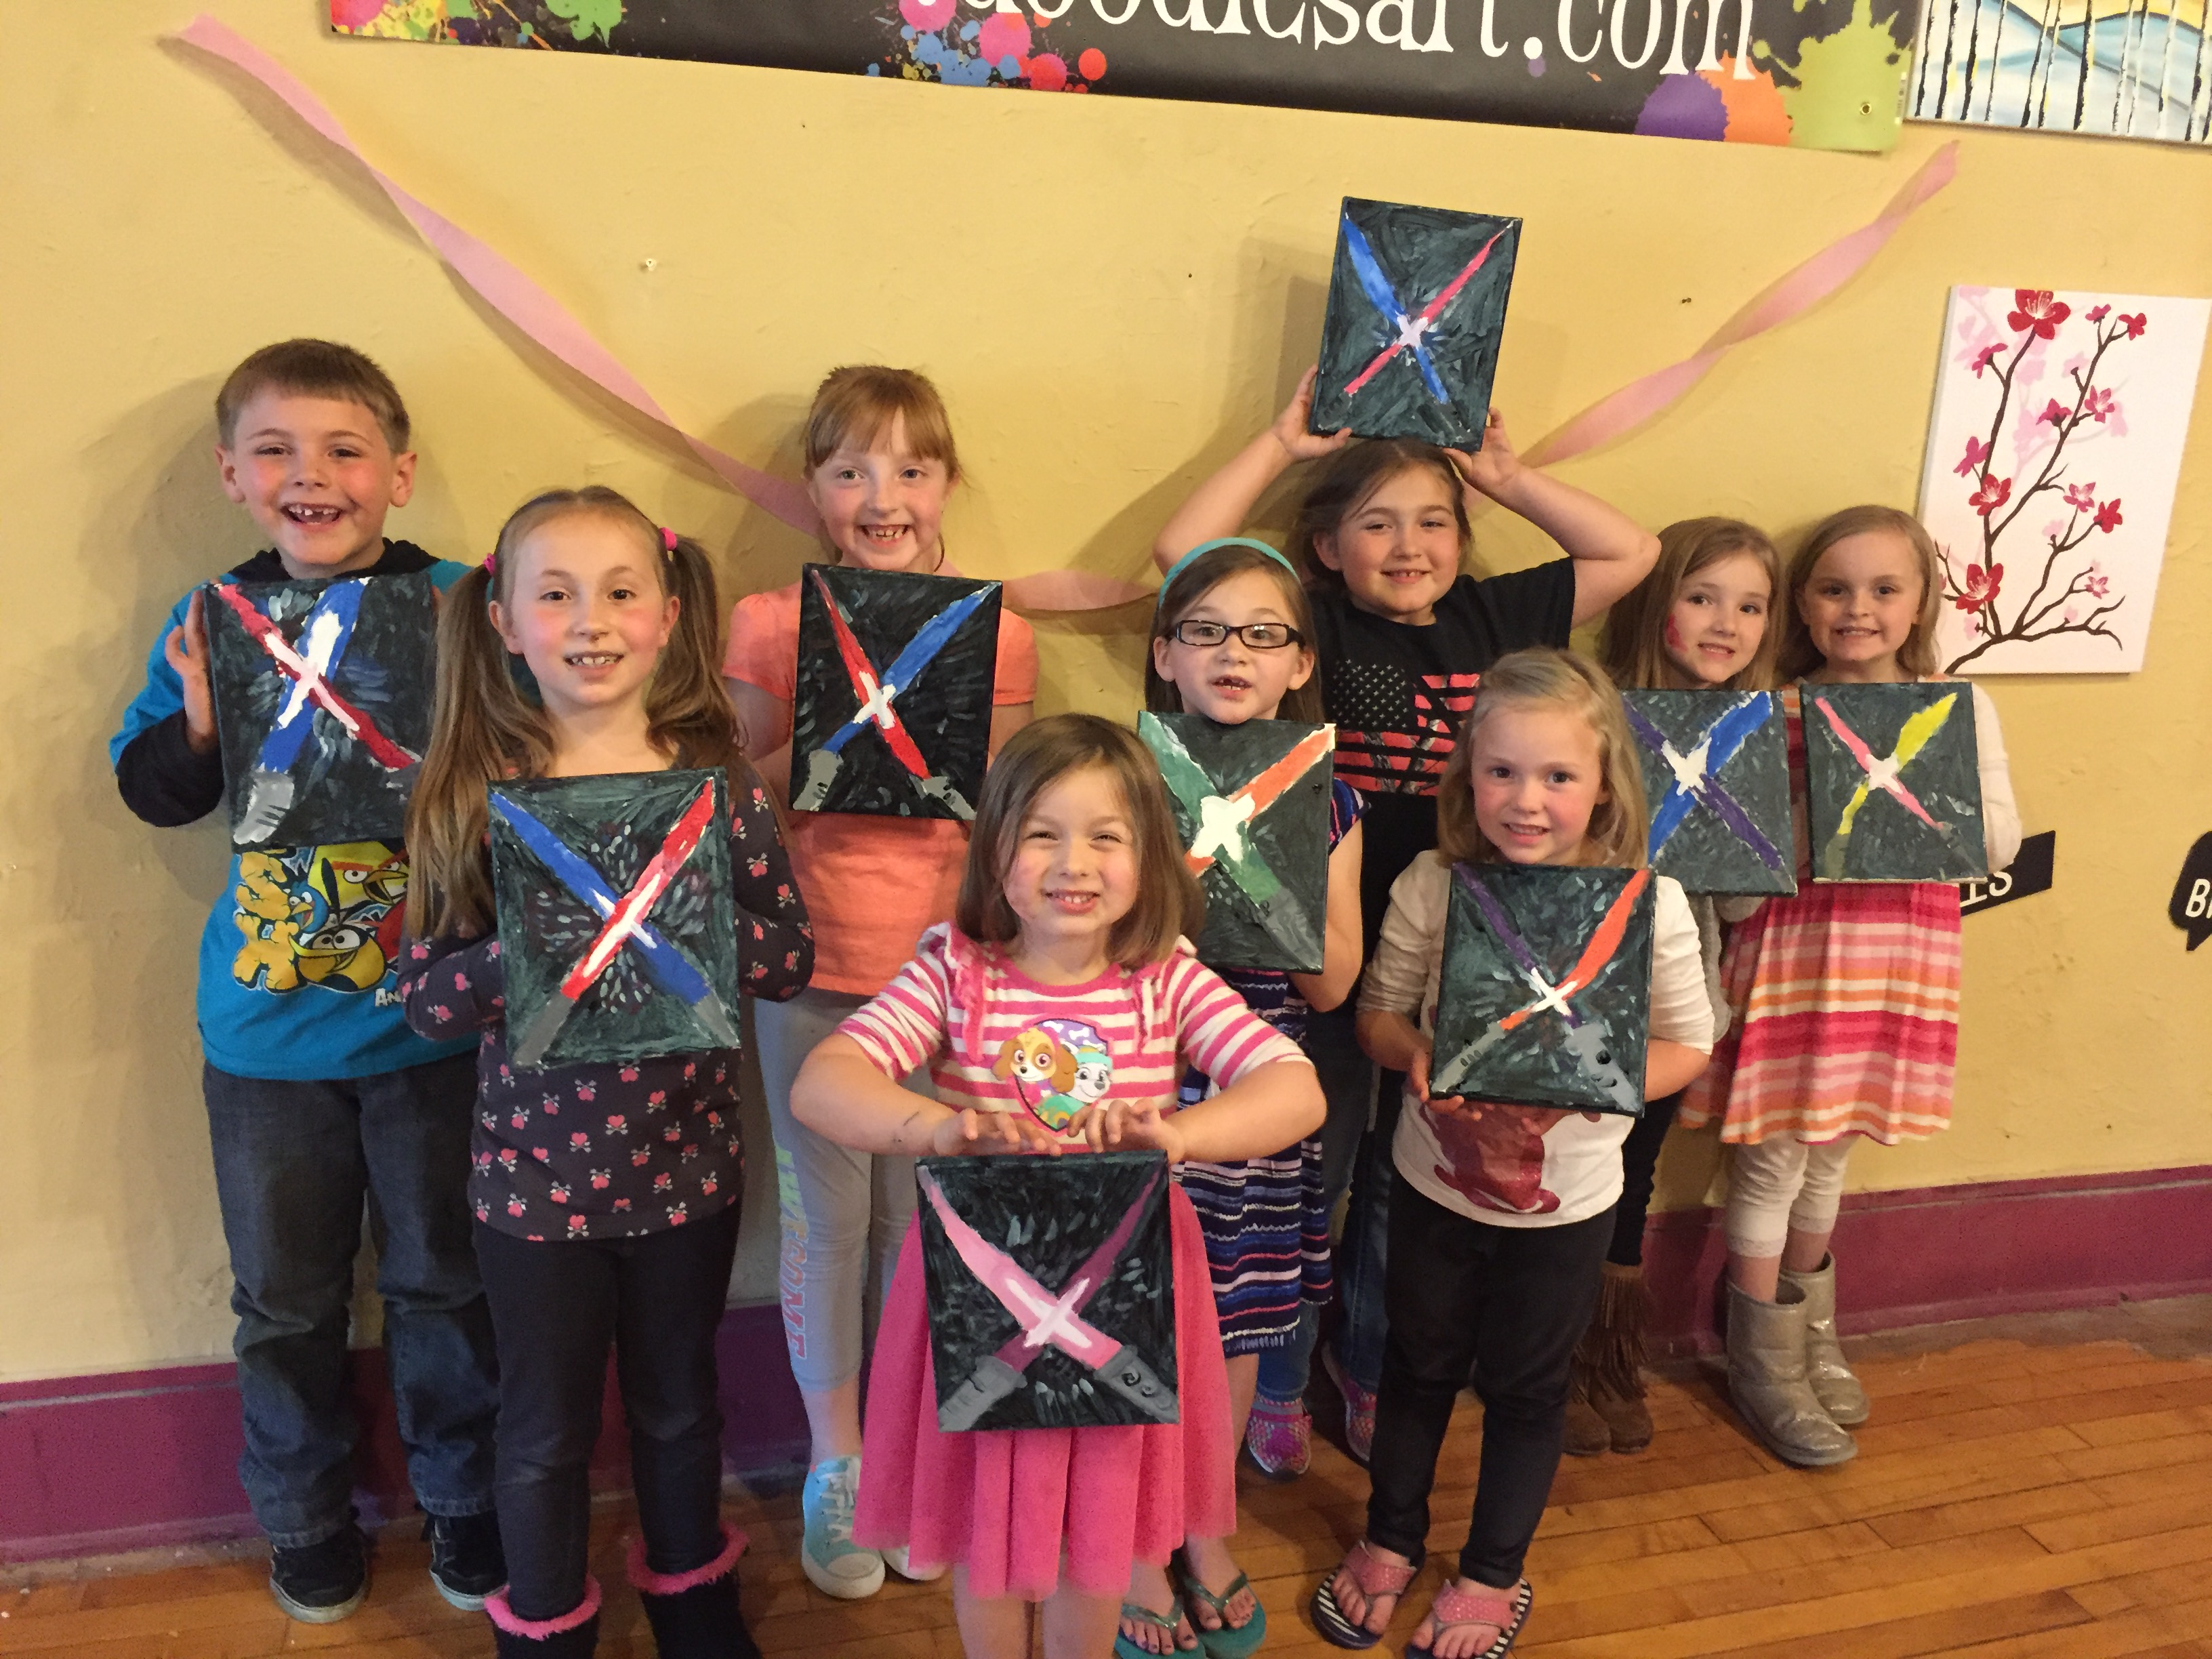 Star Wars themed Birthday for Natalie who chose Light Sabers! 5/14/16